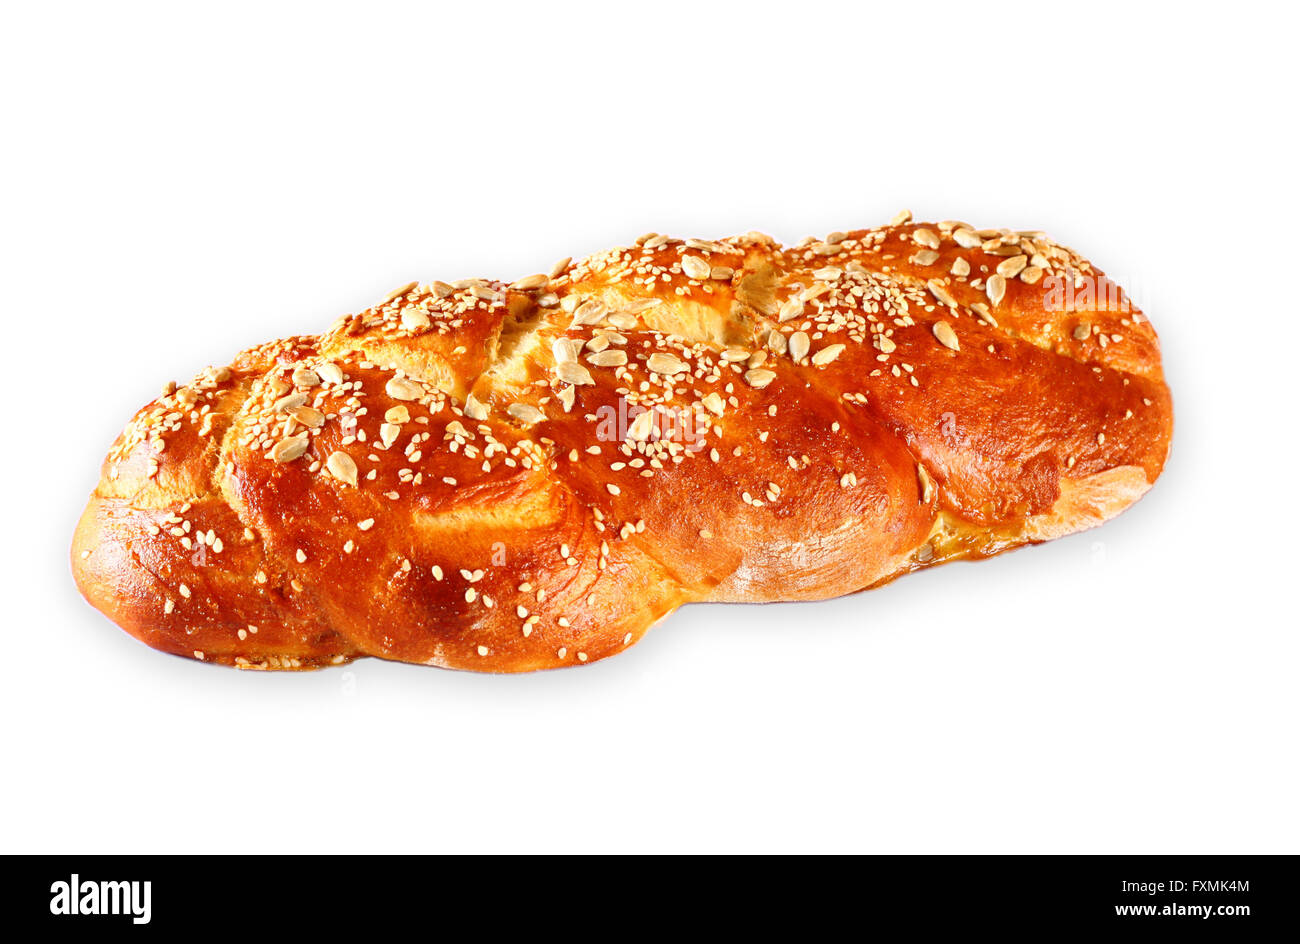 challah bread isolated on white. - Stock Image